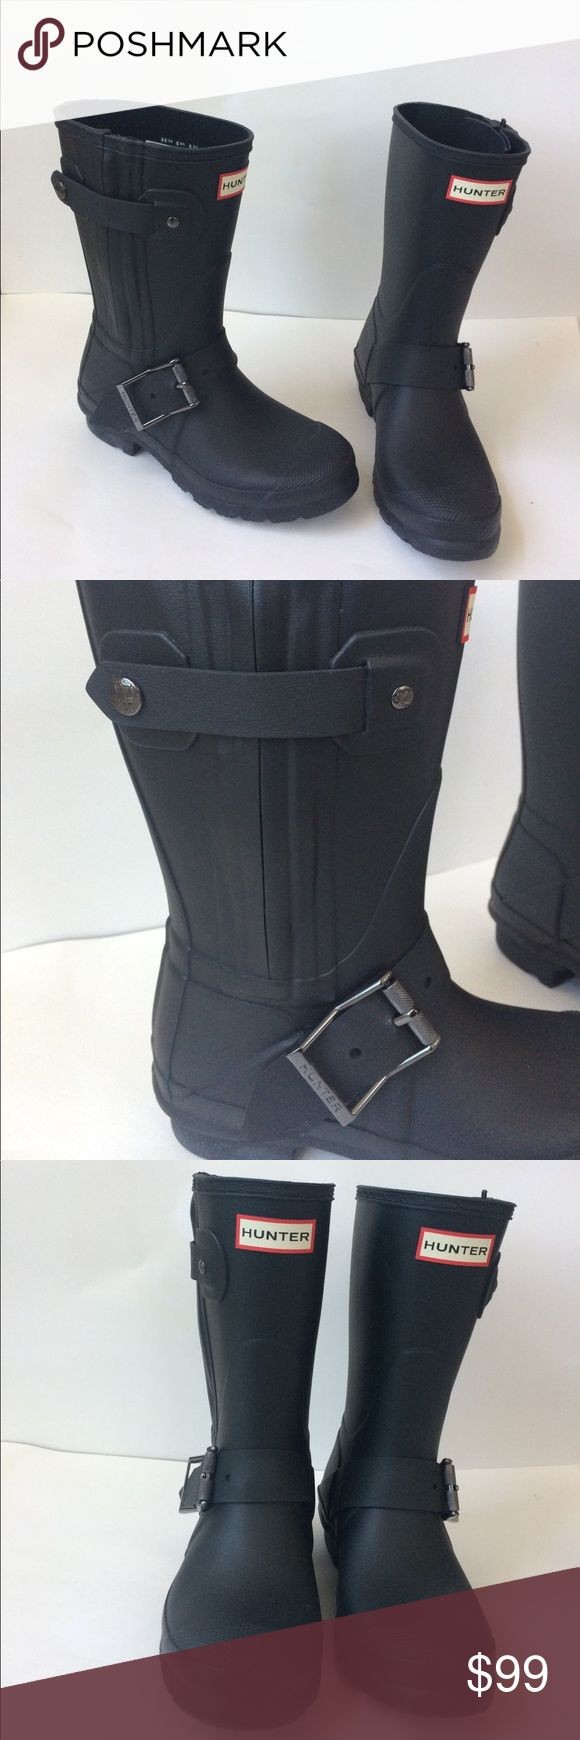 NEW Hunter Short Black Moto Buckle Rain Boots 5 36 New!! Firm price. Authentic Hunter short black moto boots in size 5 US/ 36 UK. These feature side zippers and buckles. Nordstrom exclusive! No box. Hunter Boots Shoes Winter & Rain Boots